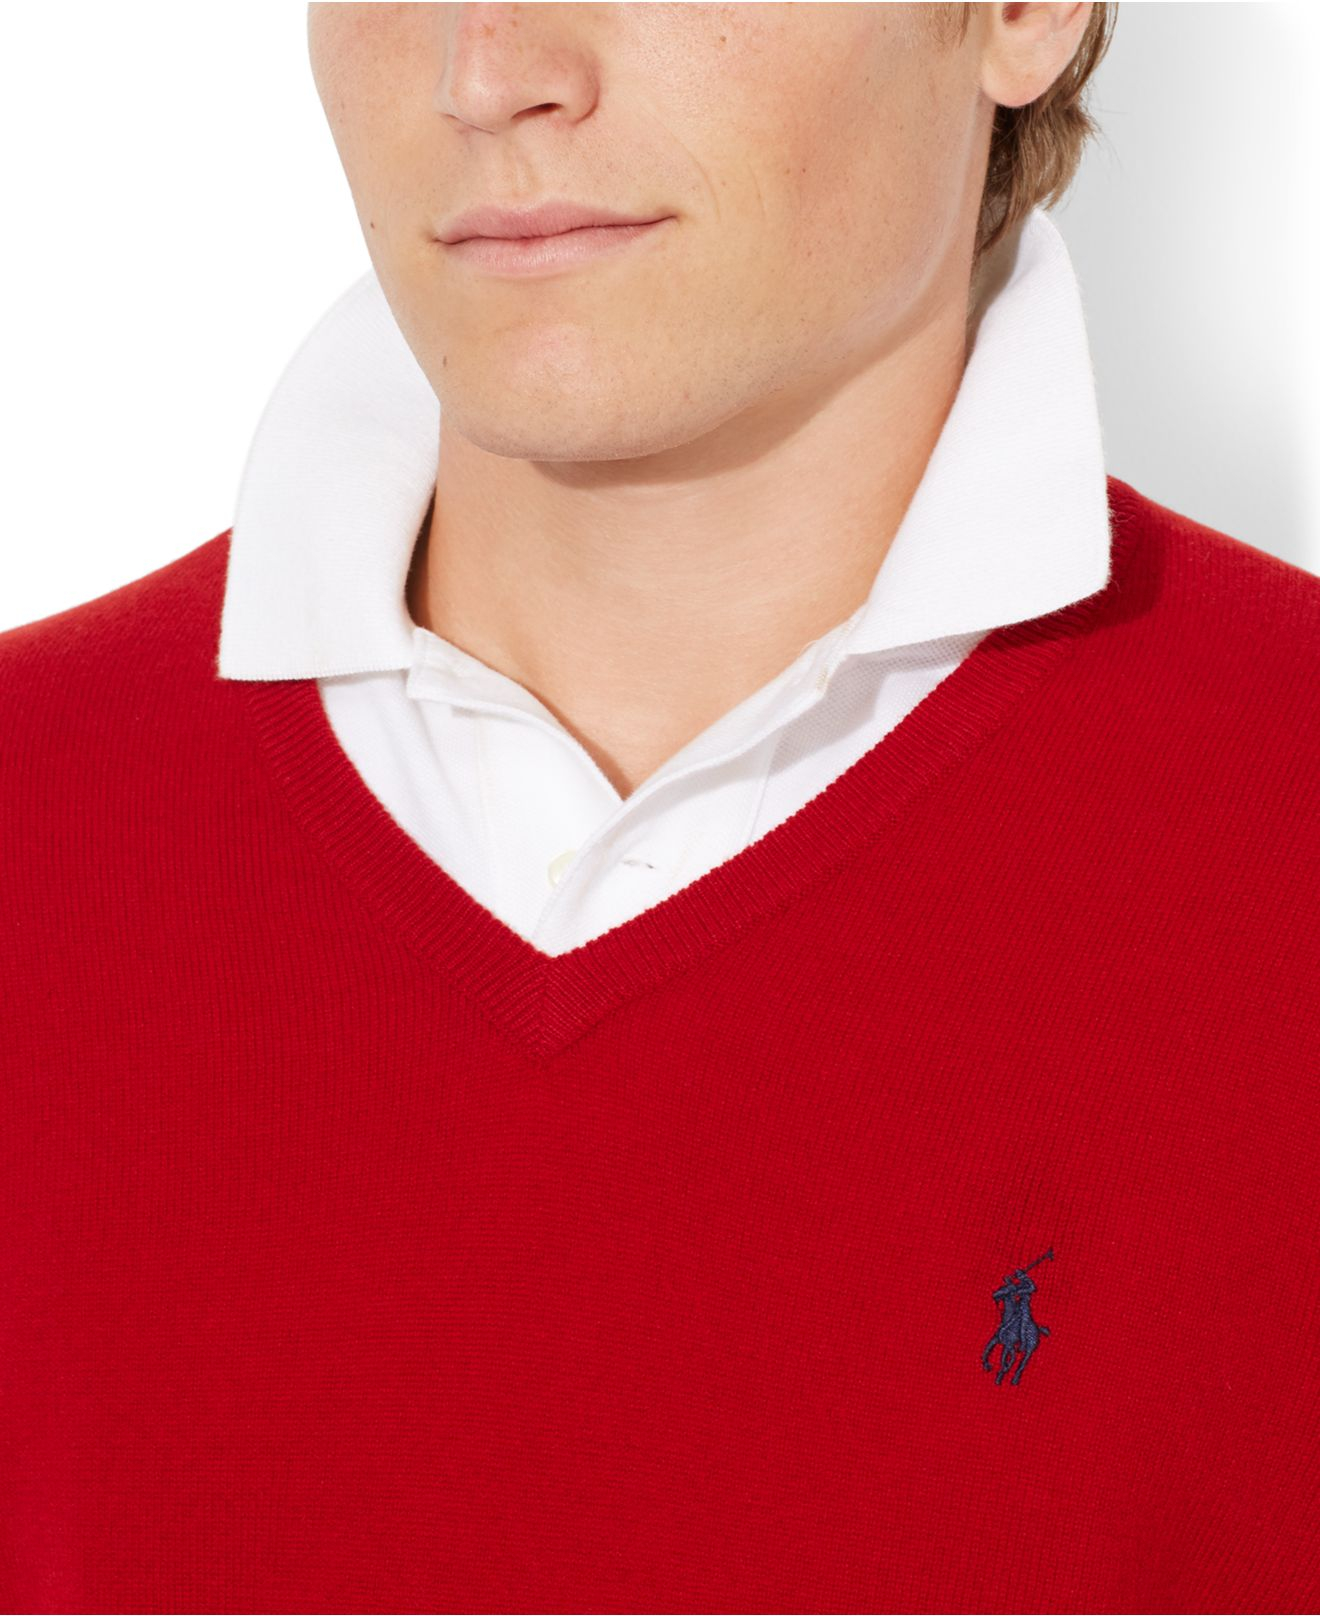 d96e05620 Polo Ralph Lauren Loryelle Merino Wool V-Neck Sweater in Red for Men ...